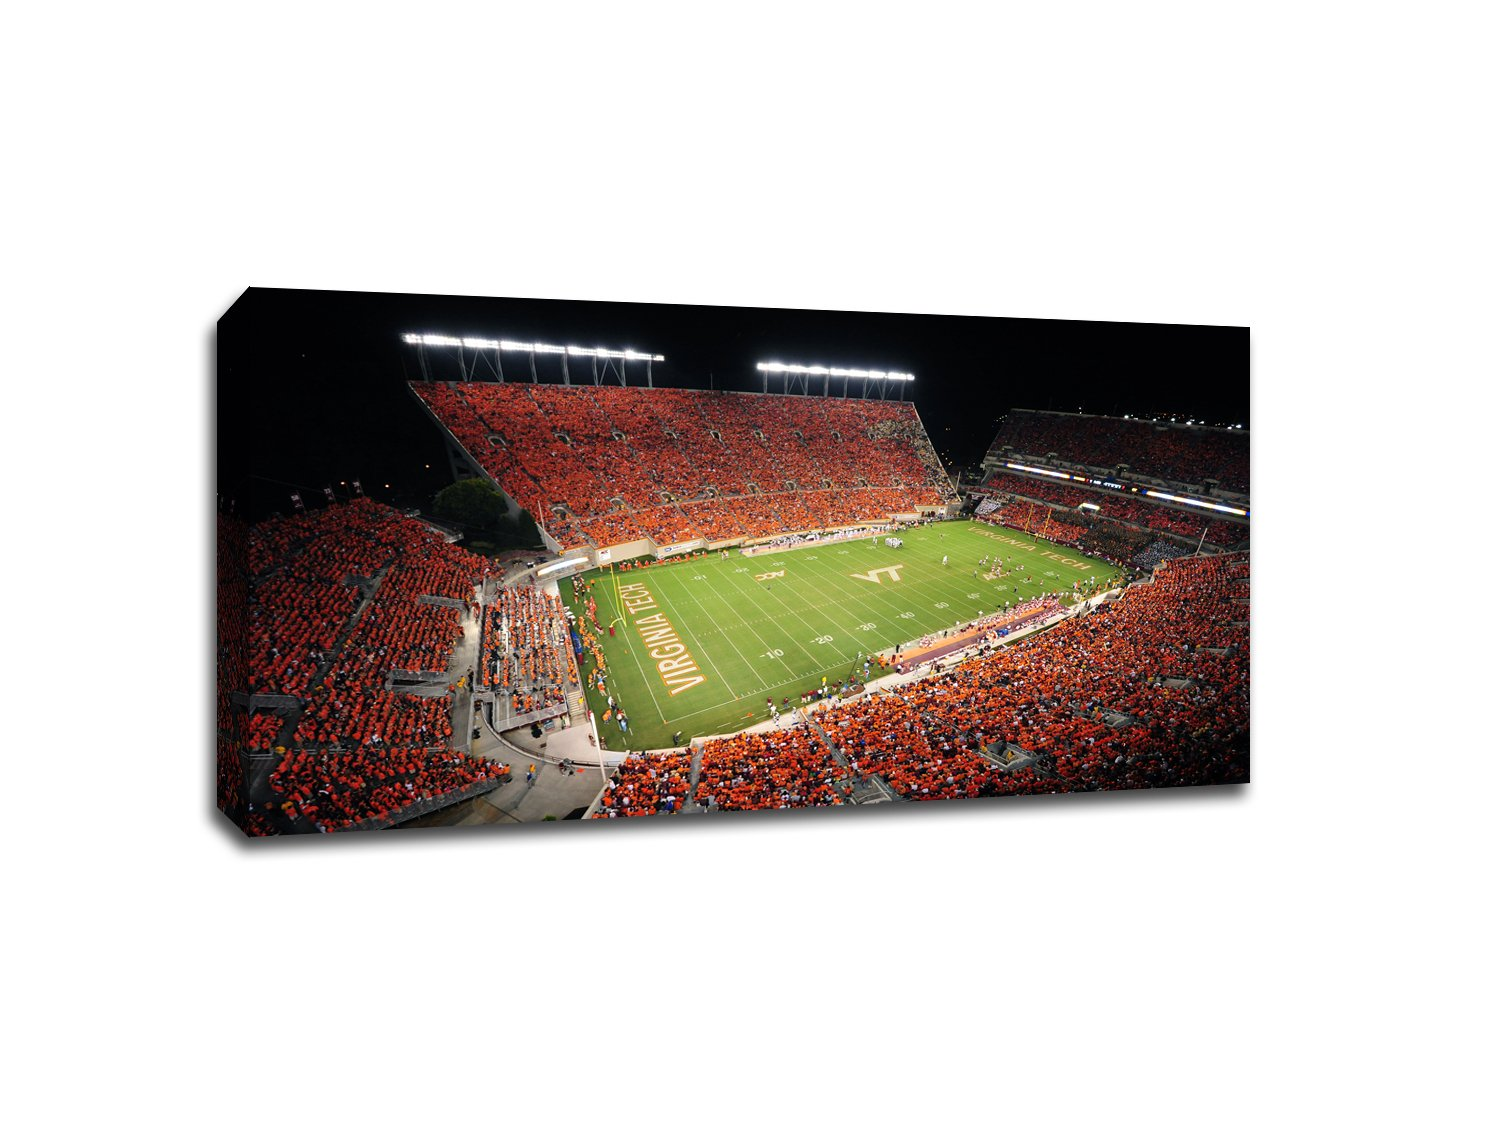 Virginia Tech Hokies - College Football - 40x22 Gallery Wrapped Canvas Wall Art